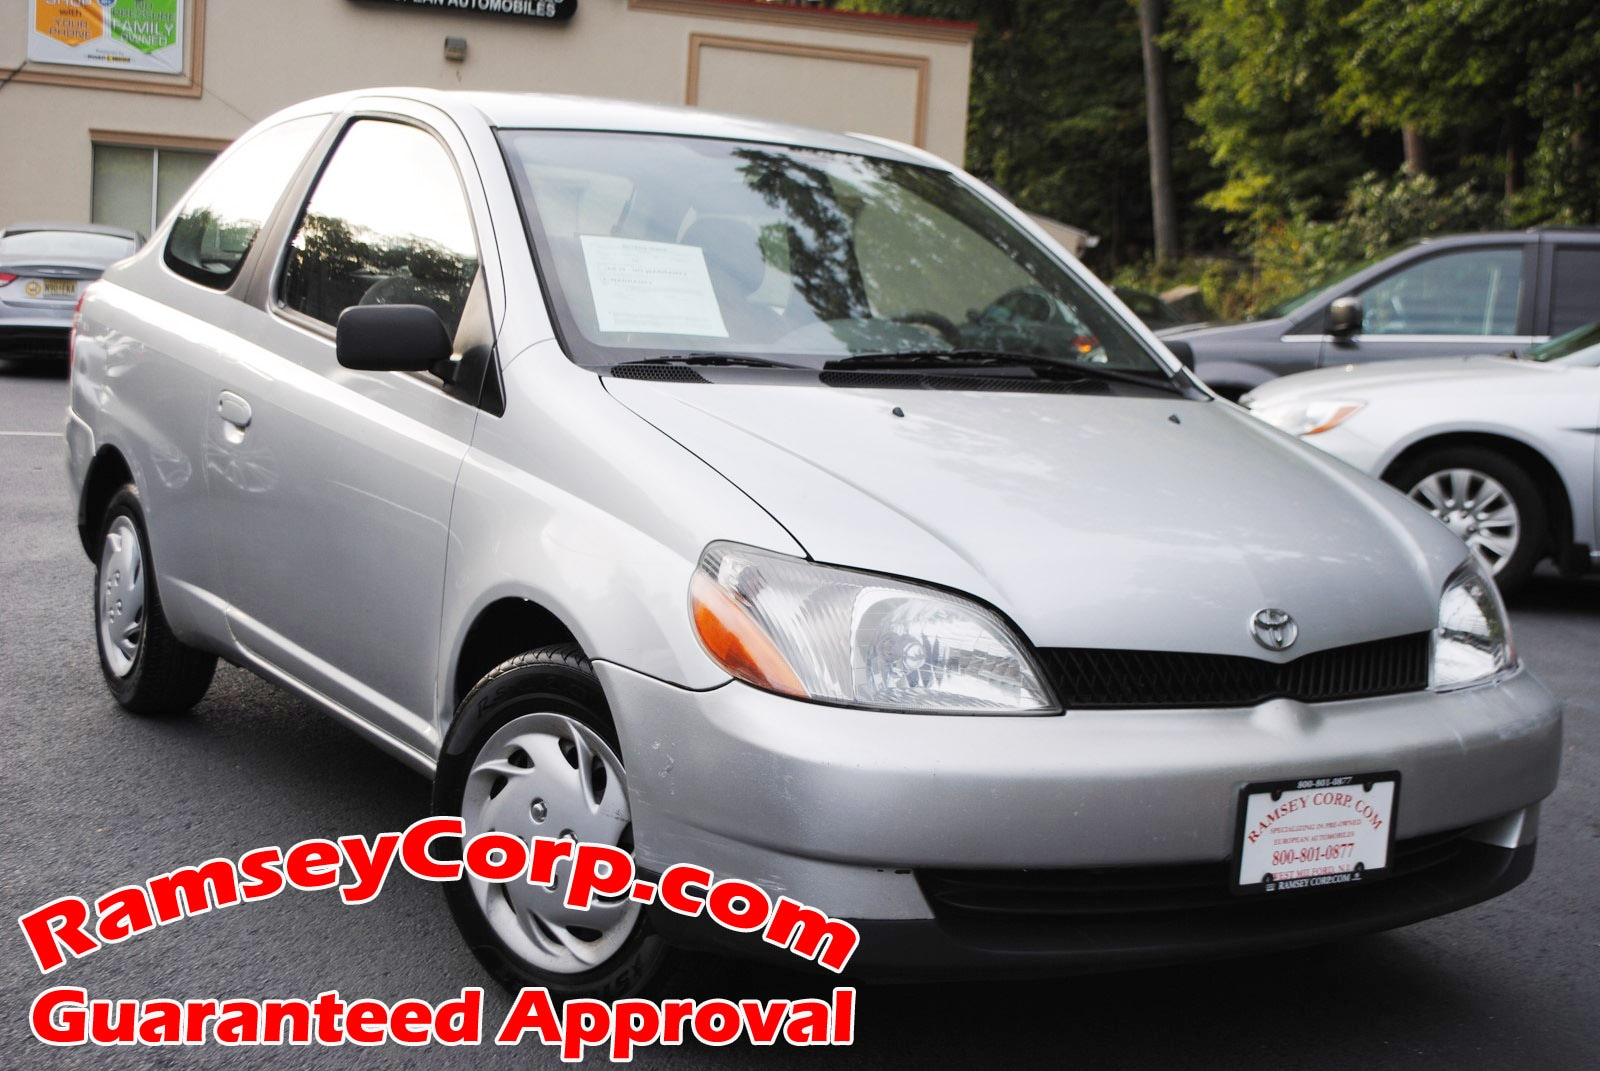 Used 2002 Toyota Echo For Sale | West Milford NJ